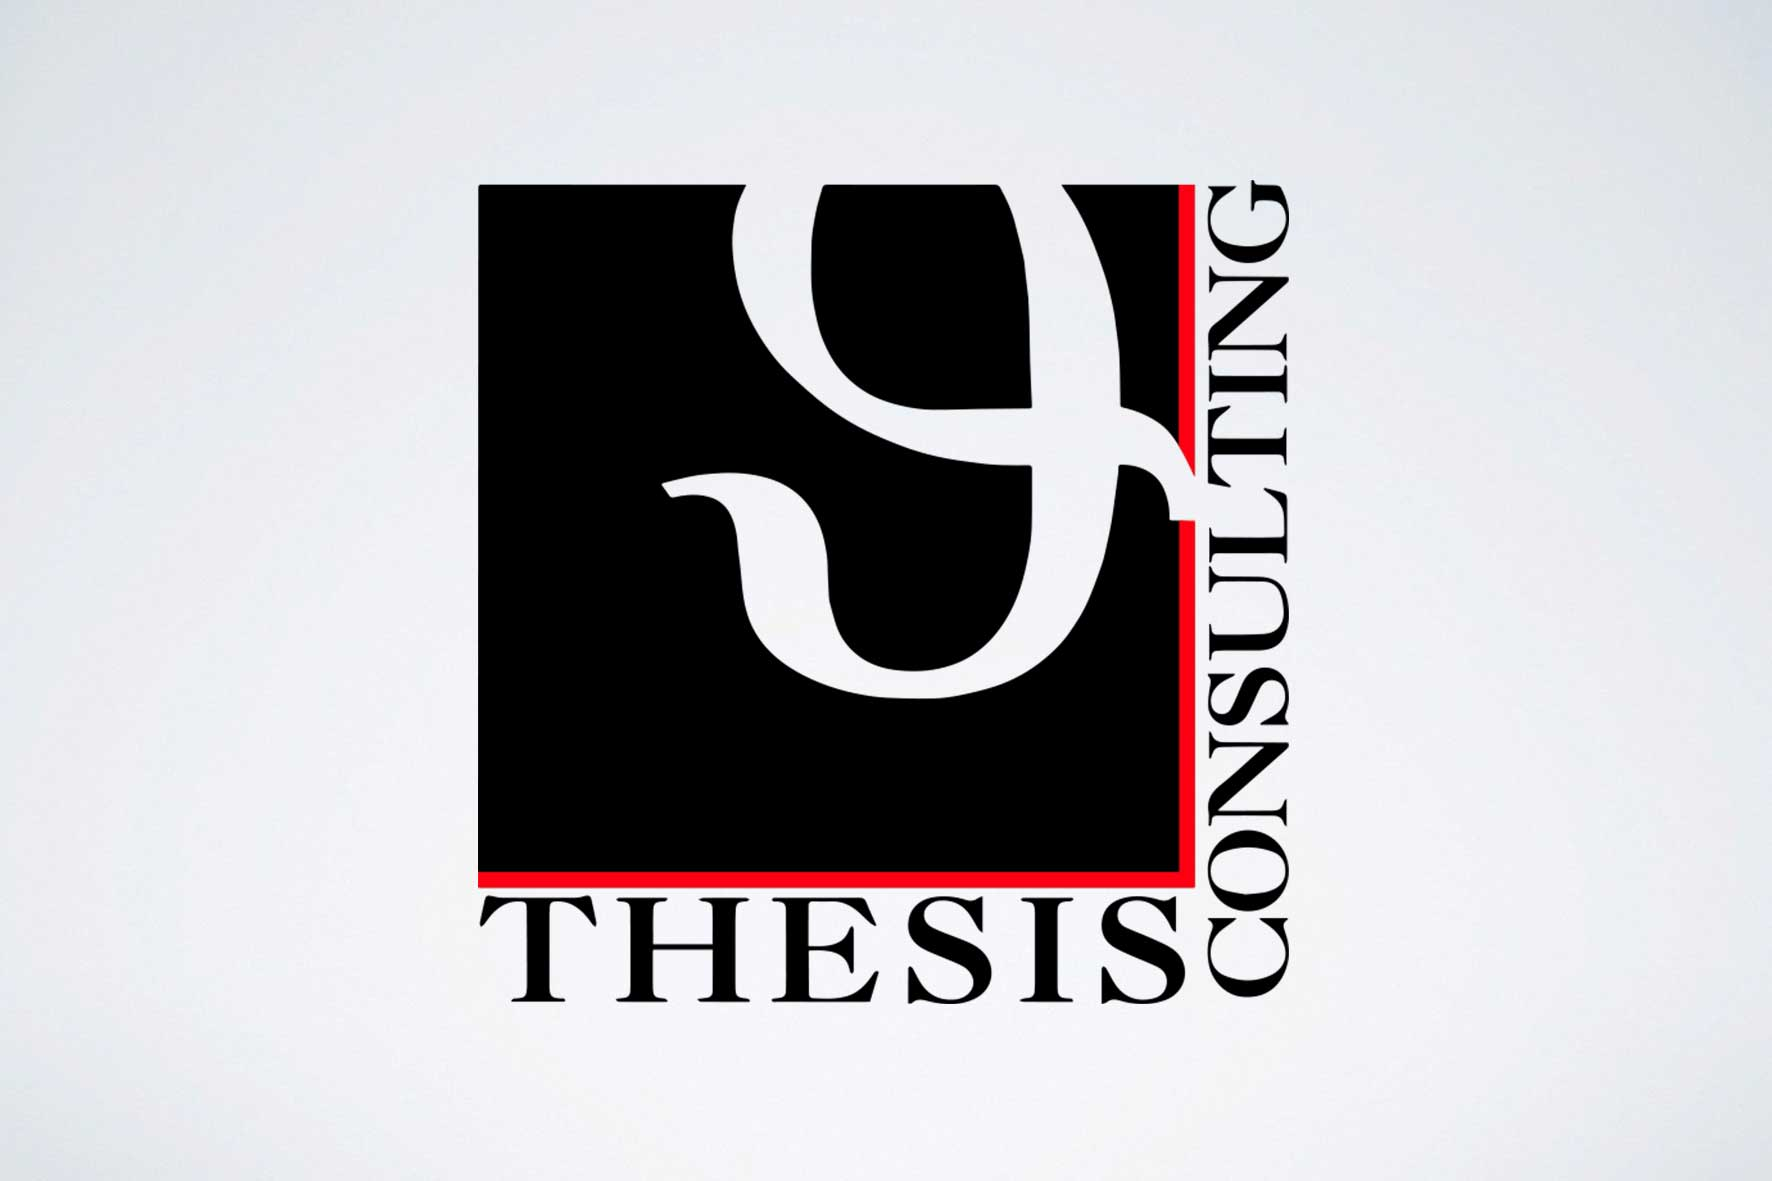 Imagotipo Thesis Consulting realizzato da Alice Bottino Visual Designer